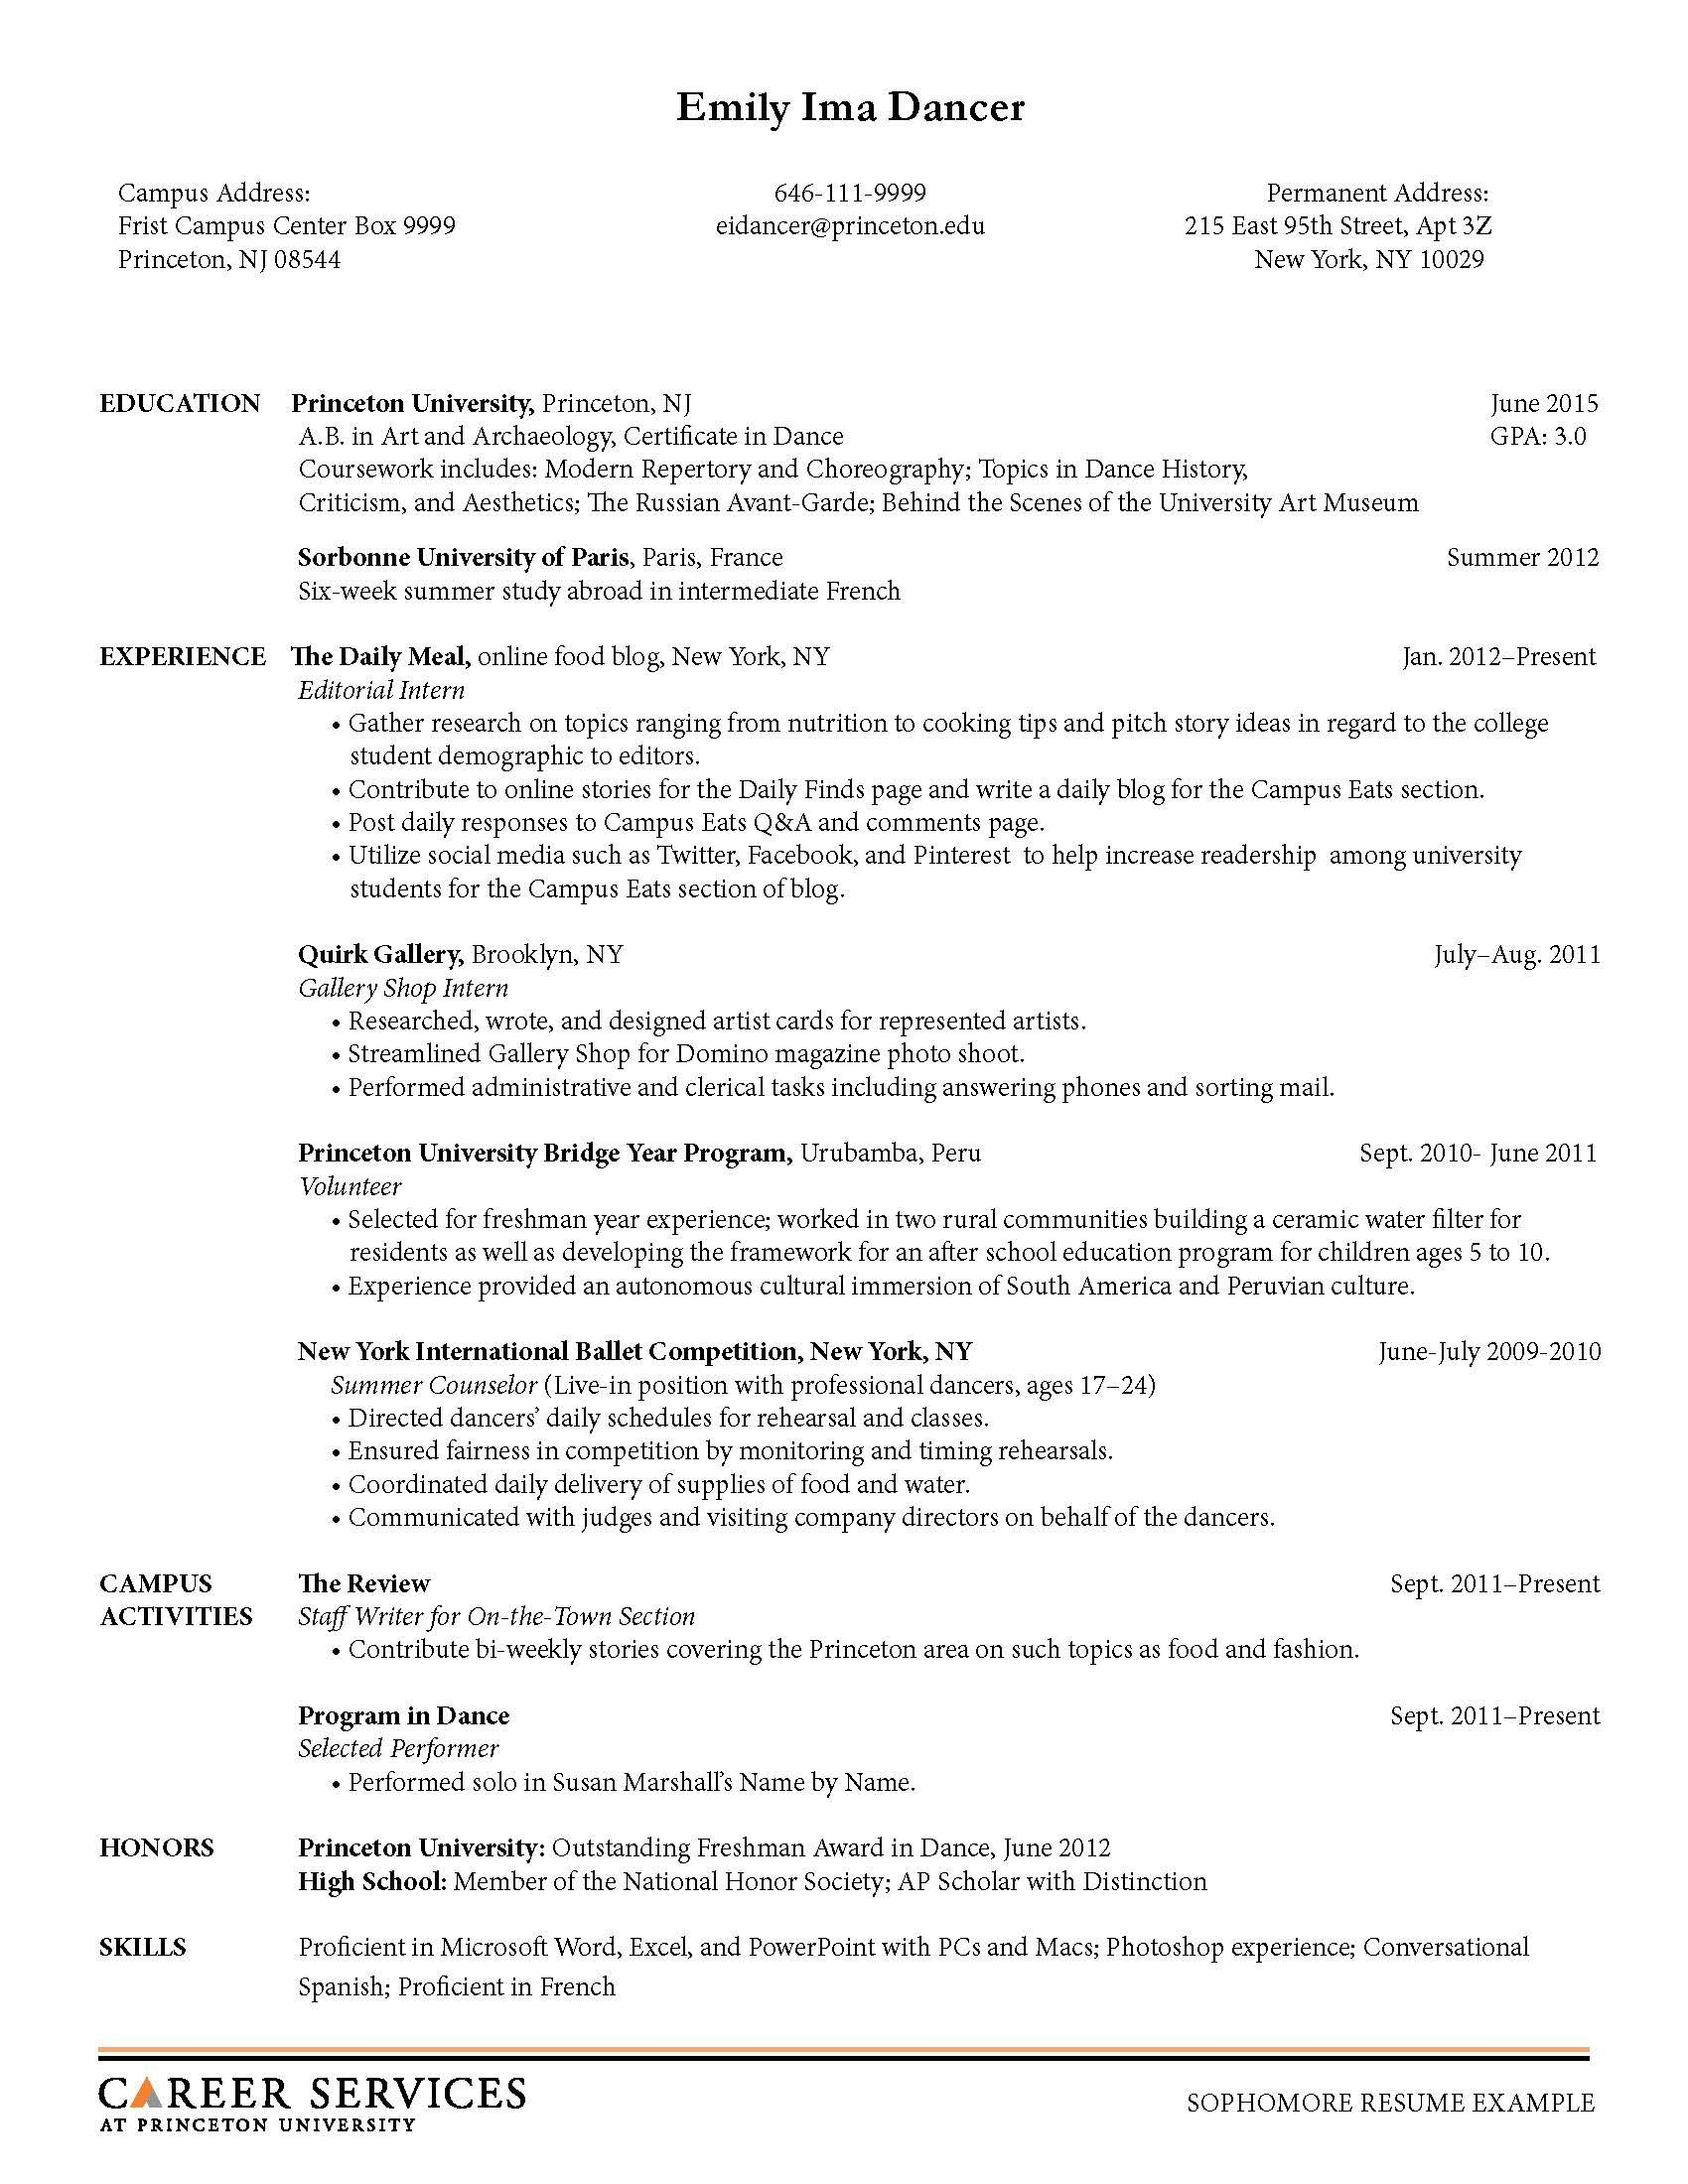 Opposenewapstandardsus  Unique Sample Resume Resume And Career On Pinterest With Fair Aba Therapist Resume Besides Resume For Personal Trainer Furthermore How To Write A Resume For Your First Job With Agreeable Rf Engineer Resume Also Designed Resumes In Addition Skills For Nursing Resume And How To Do Resume On Word As Well As Truly Free Resume Builder Additionally Office Assistant Resume Examples From Pinterestcom With Opposenewapstandardsus  Fair Sample Resume Resume And Career On Pinterest With Agreeable Aba Therapist Resume Besides Resume For Personal Trainer Furthermore How To Write A Resume For Your First Job And Unique Rf Engineer Resume Also Designed Resumes In Addition Skills For Nursing Resume From Pinterestcom